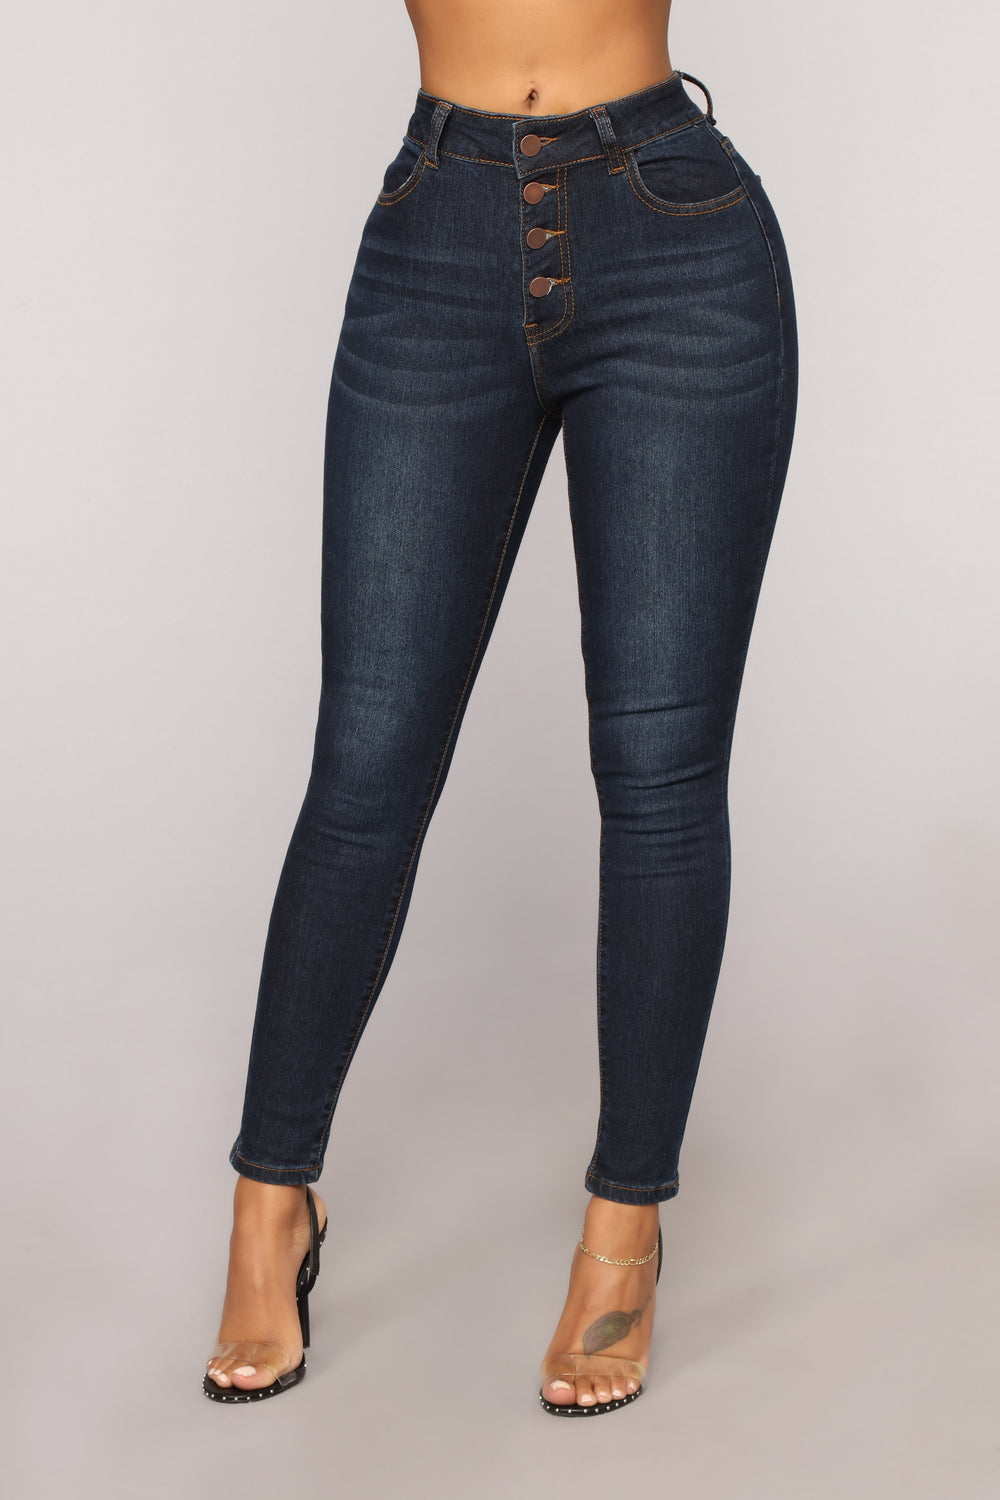 Los Angeles Bound Ankle Jeans - Dark Denim